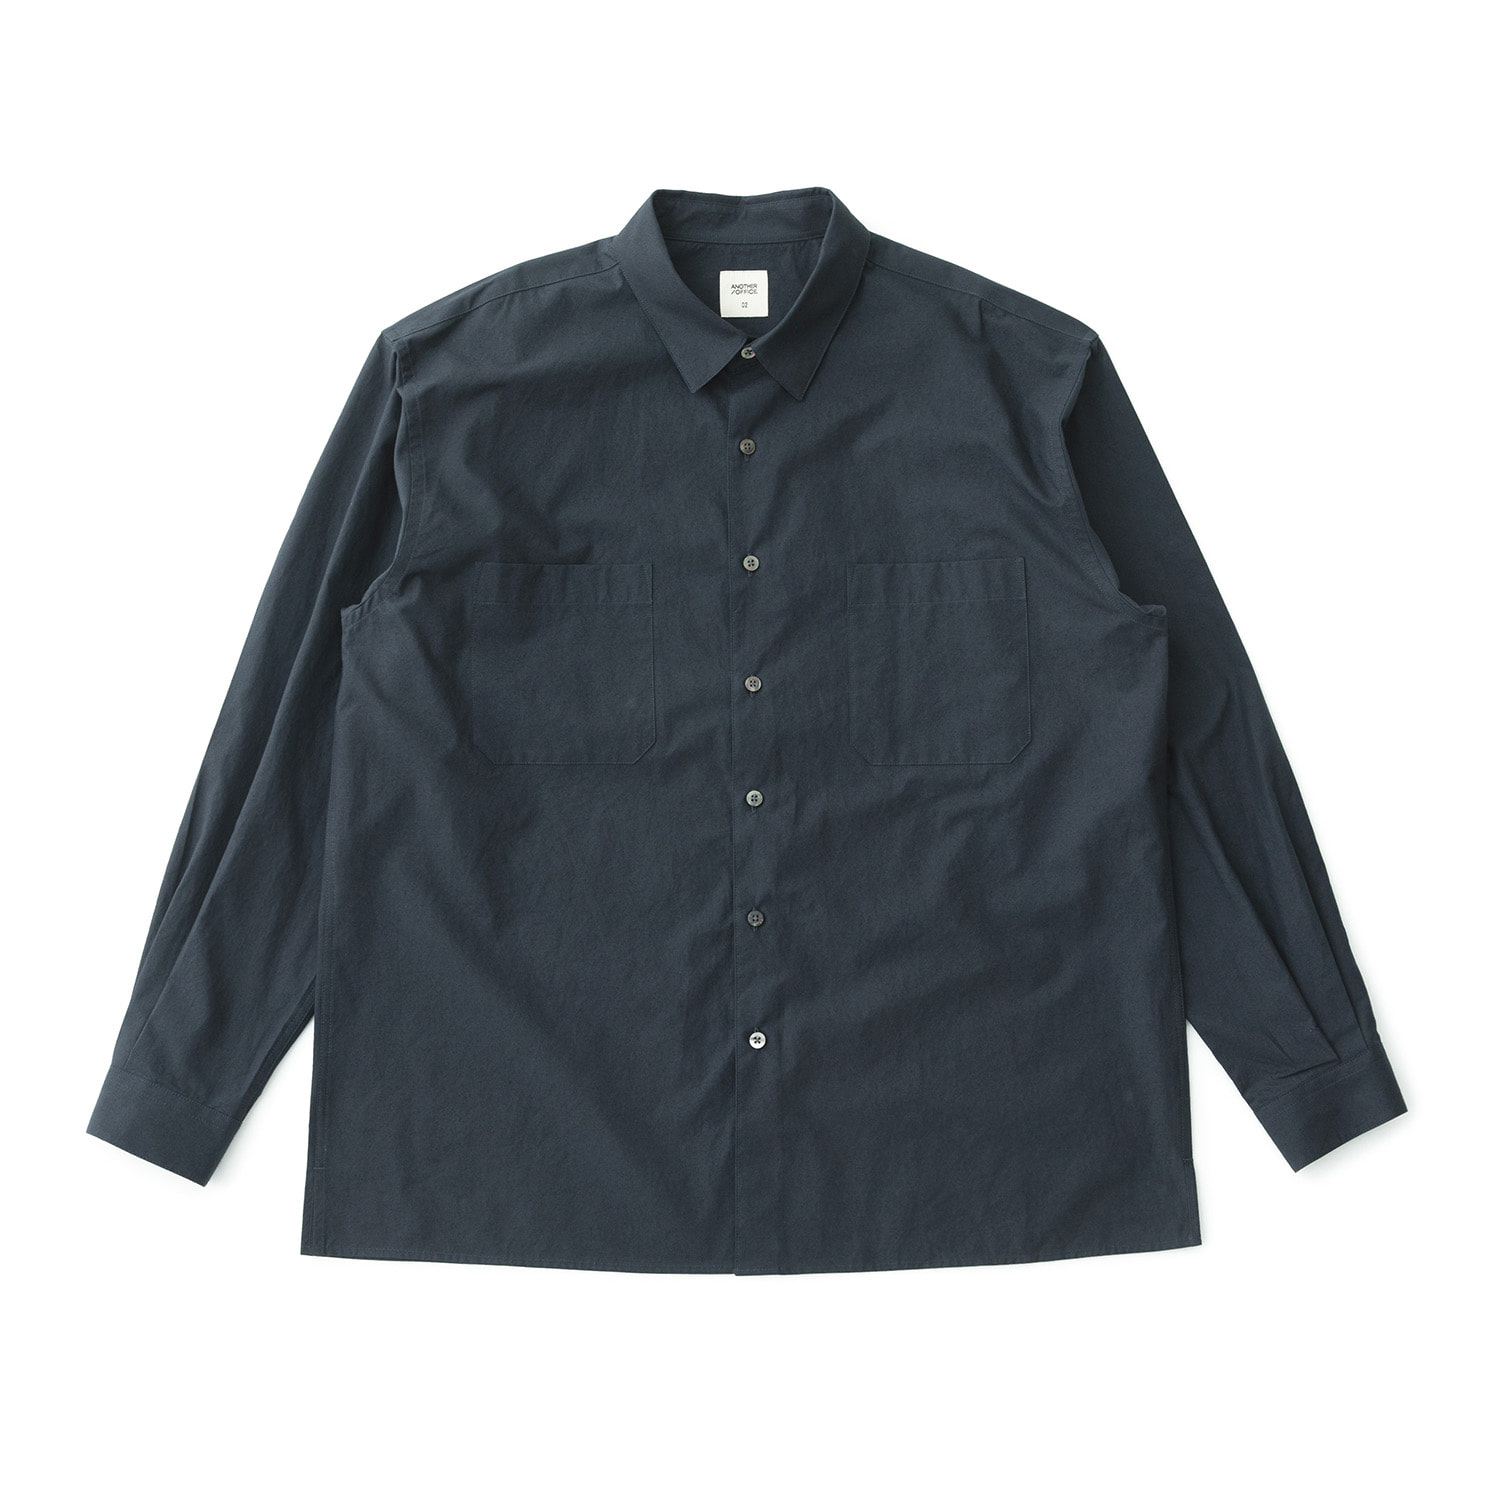 [재입고] Comfy Oversized Shirt (Dark Navy)